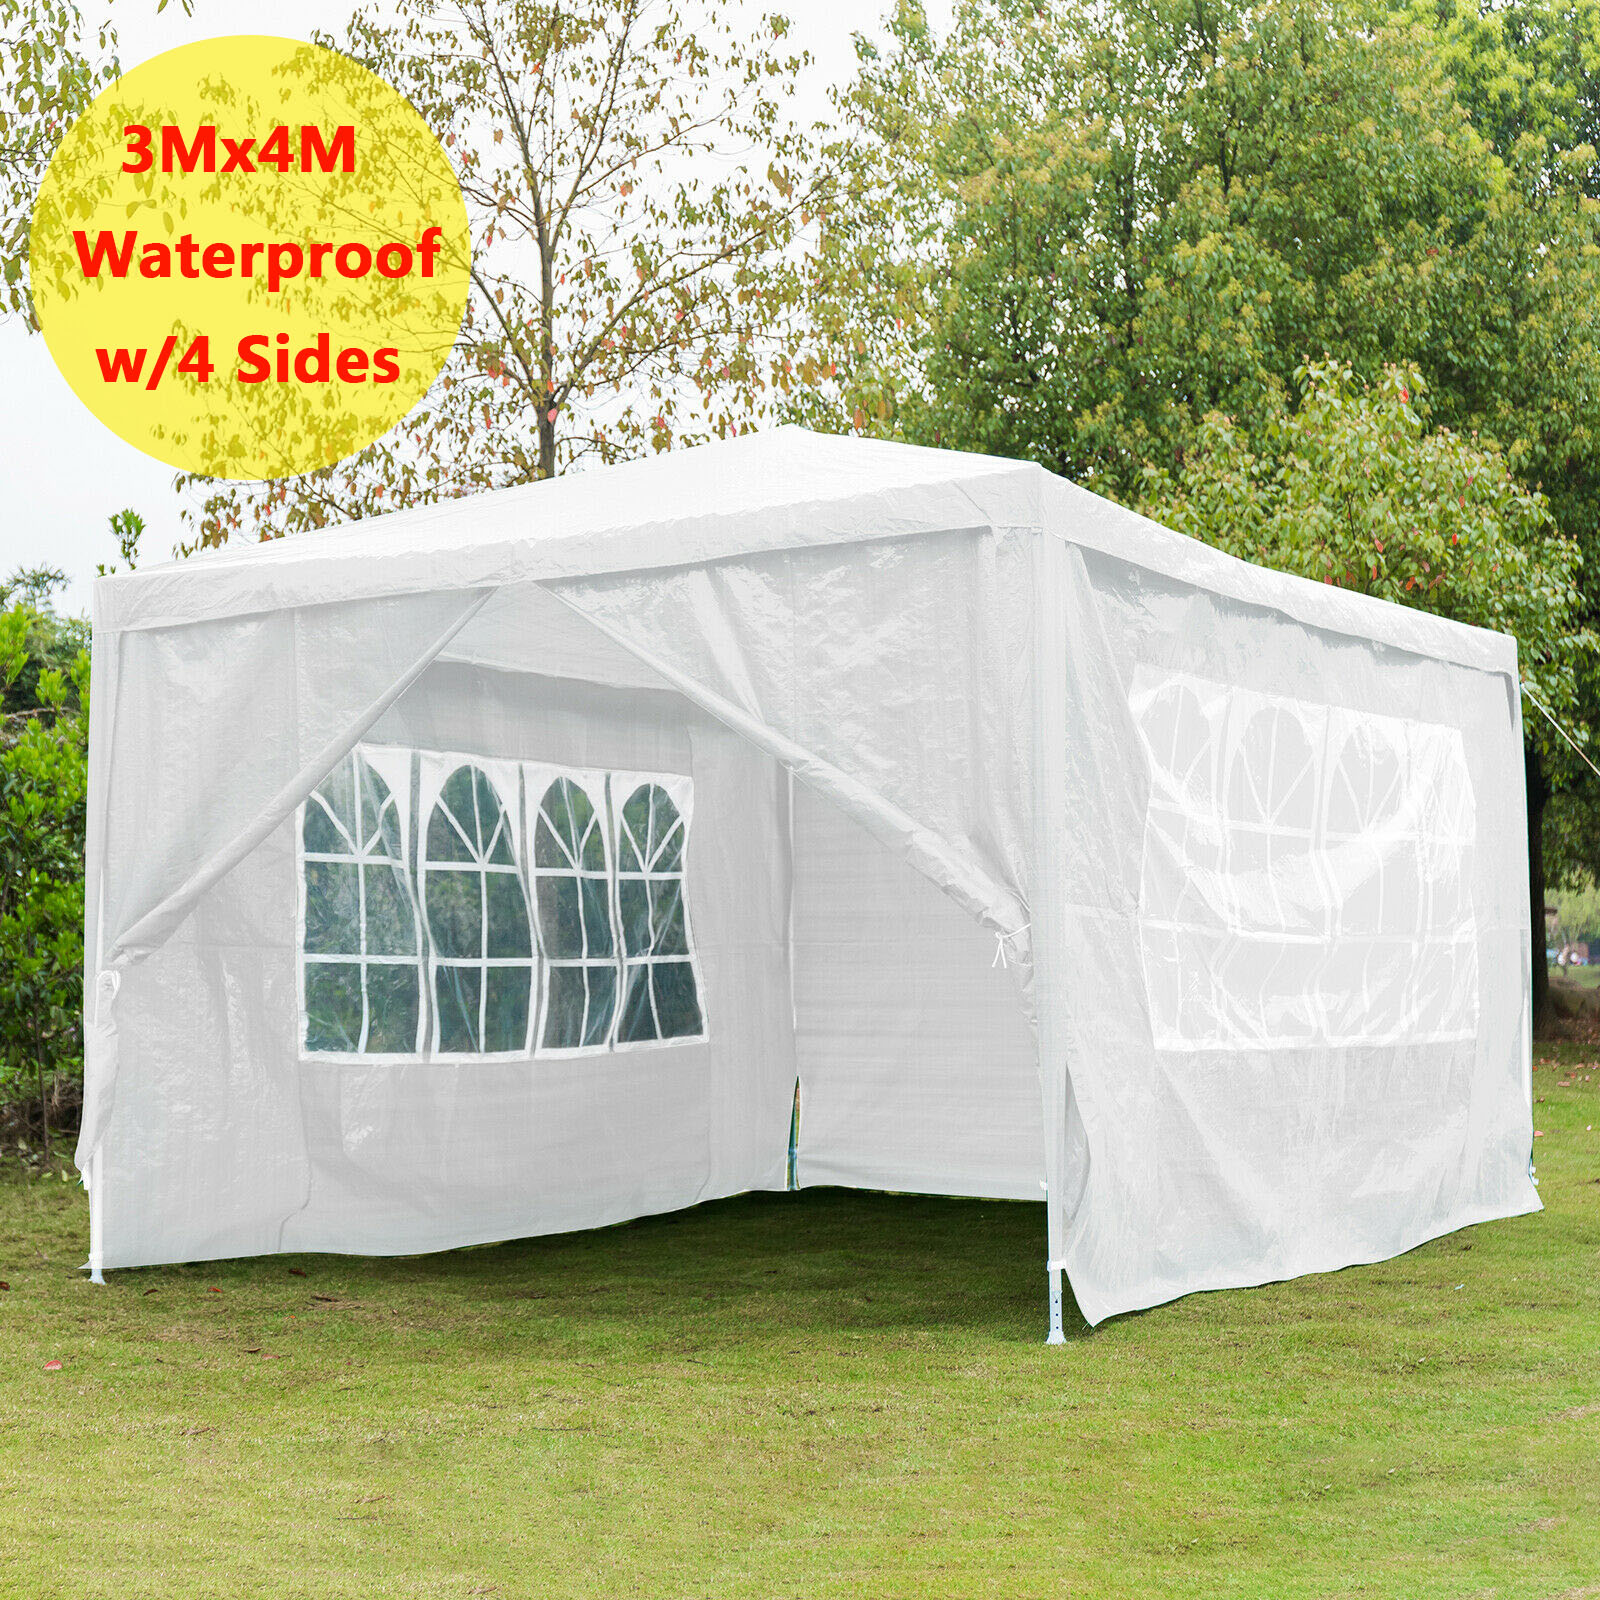 Gazebo Marquee Party Tent With Sides Waterproof Garden Patio Outdoor Canopy UK